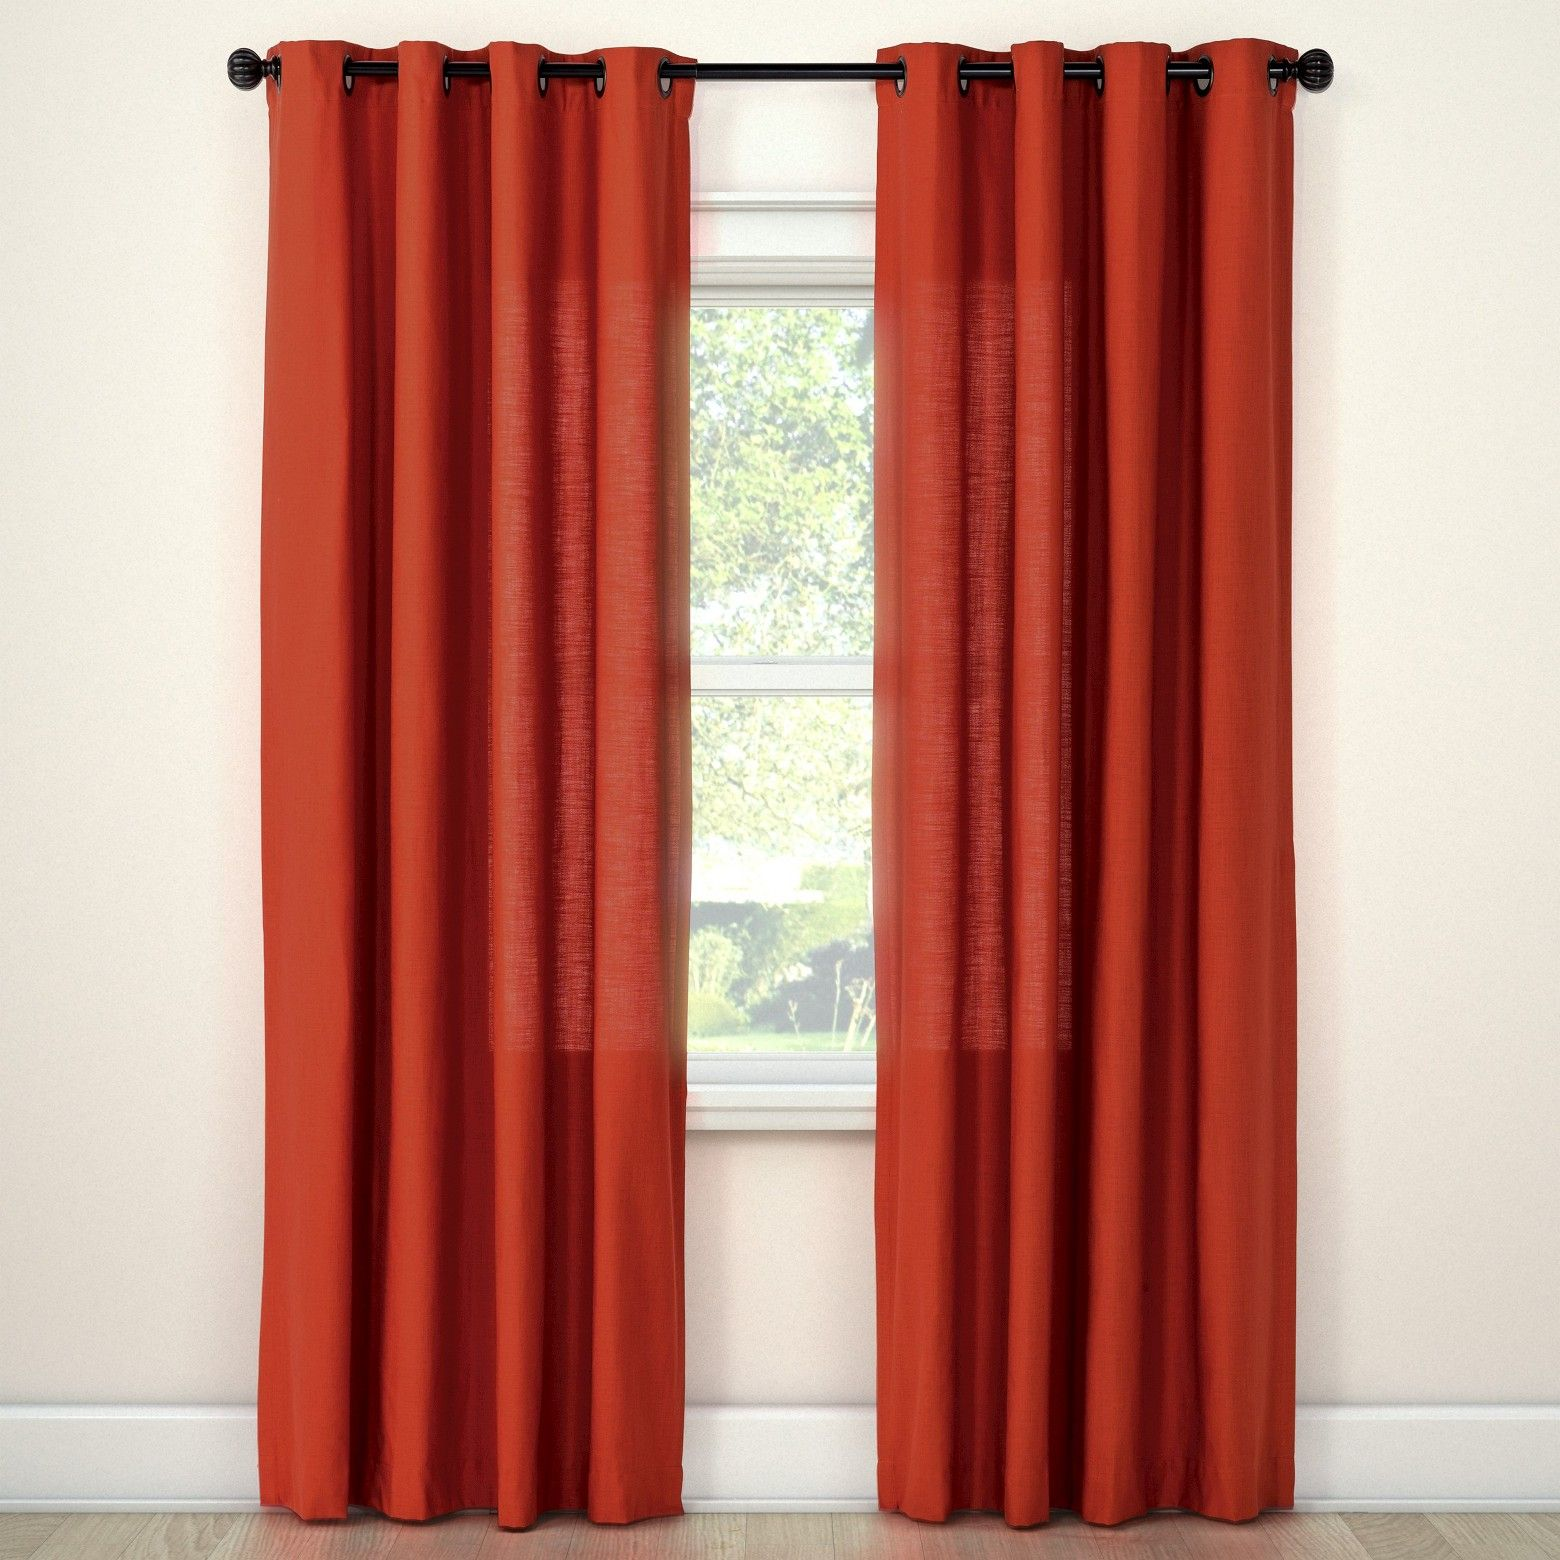 Natural Solid Curtain Panel Threshold Solid Curtains